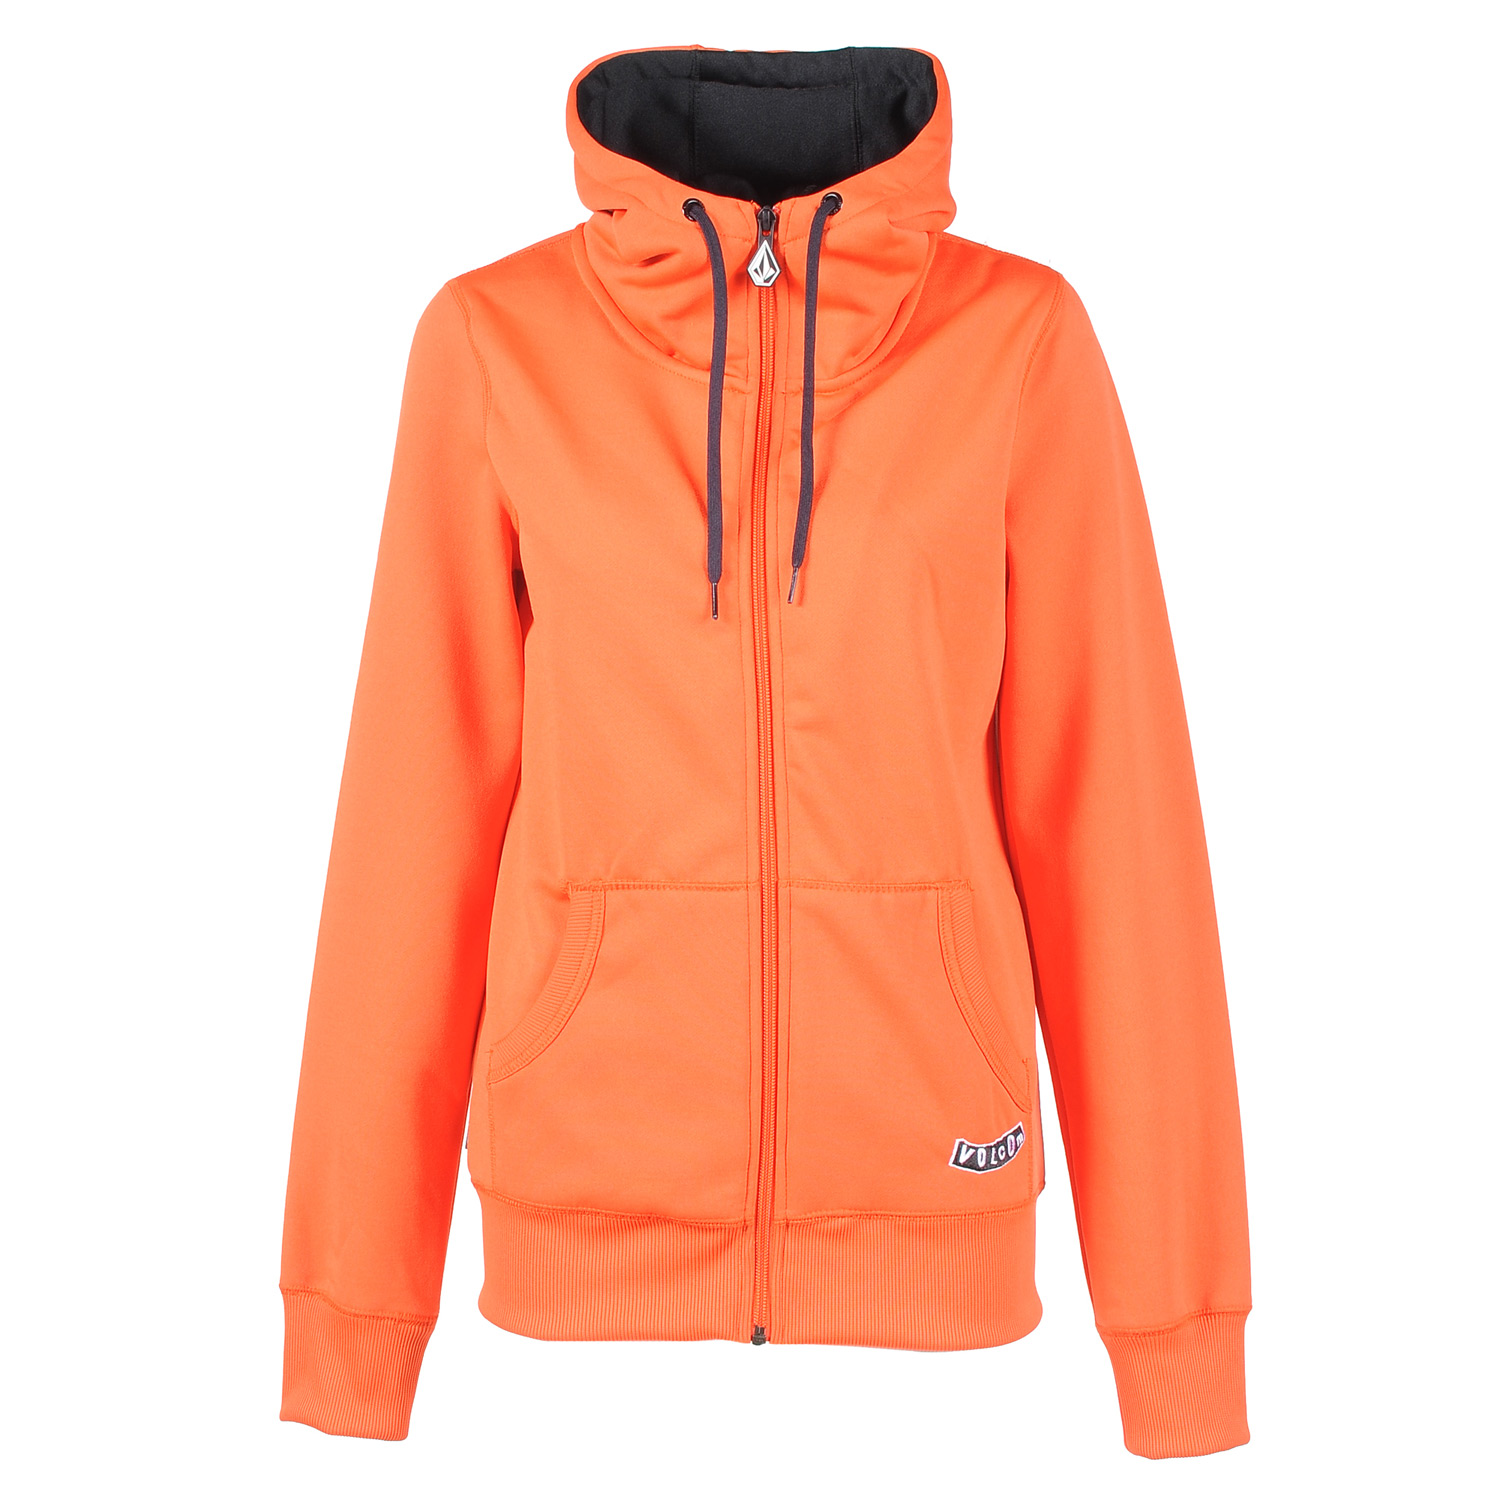 Surf Key Features of the Volcom Studio Basic Hydro Zip Hoodie: Hydrophobic Fleece Full Zip Front Ribbed Cuff Ribbed Hem Drawcord Hood Cinch Circle Stone Embroidery Volcom Pistol Embroidery - $37.95